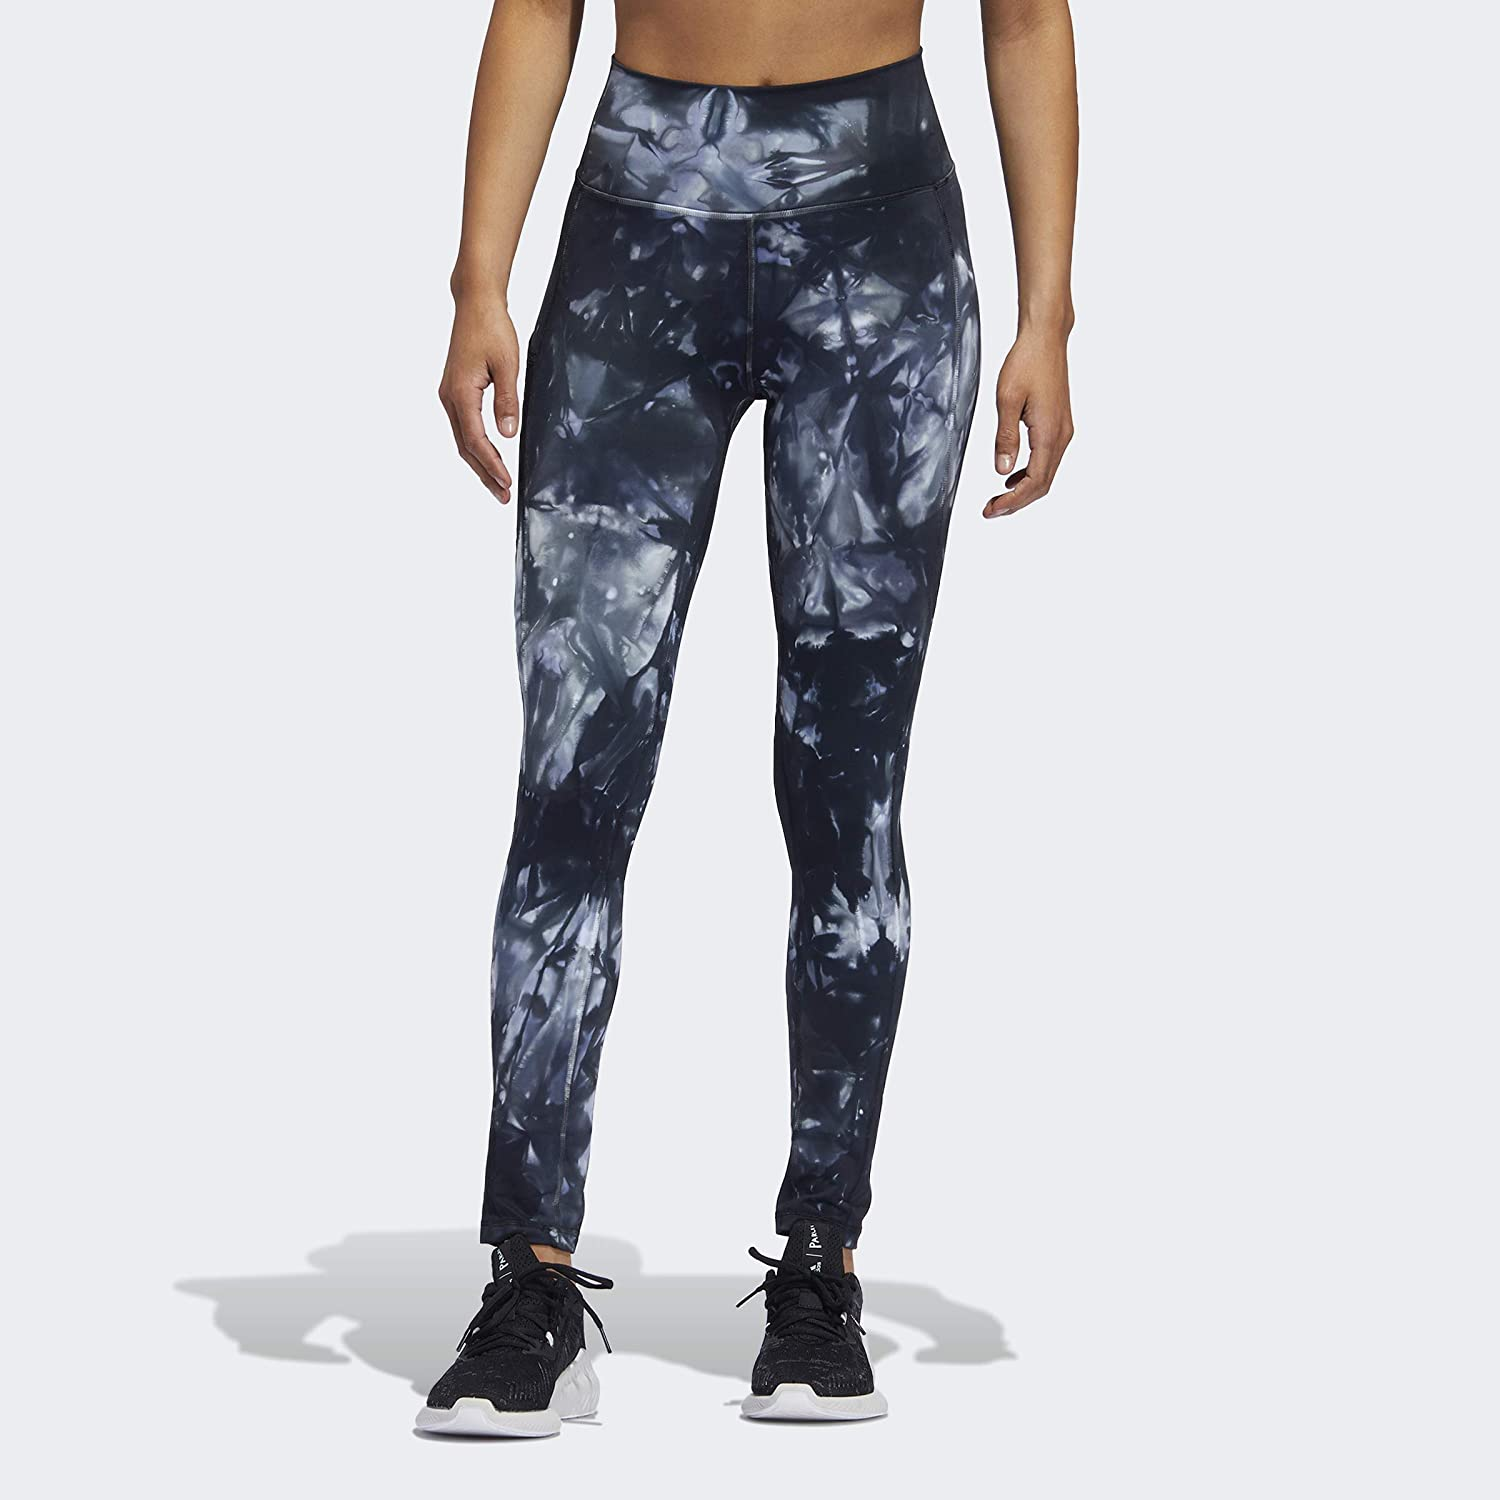 adidas Women's Believe New product! New type This wholesale 7 Tight 8 Parley Length